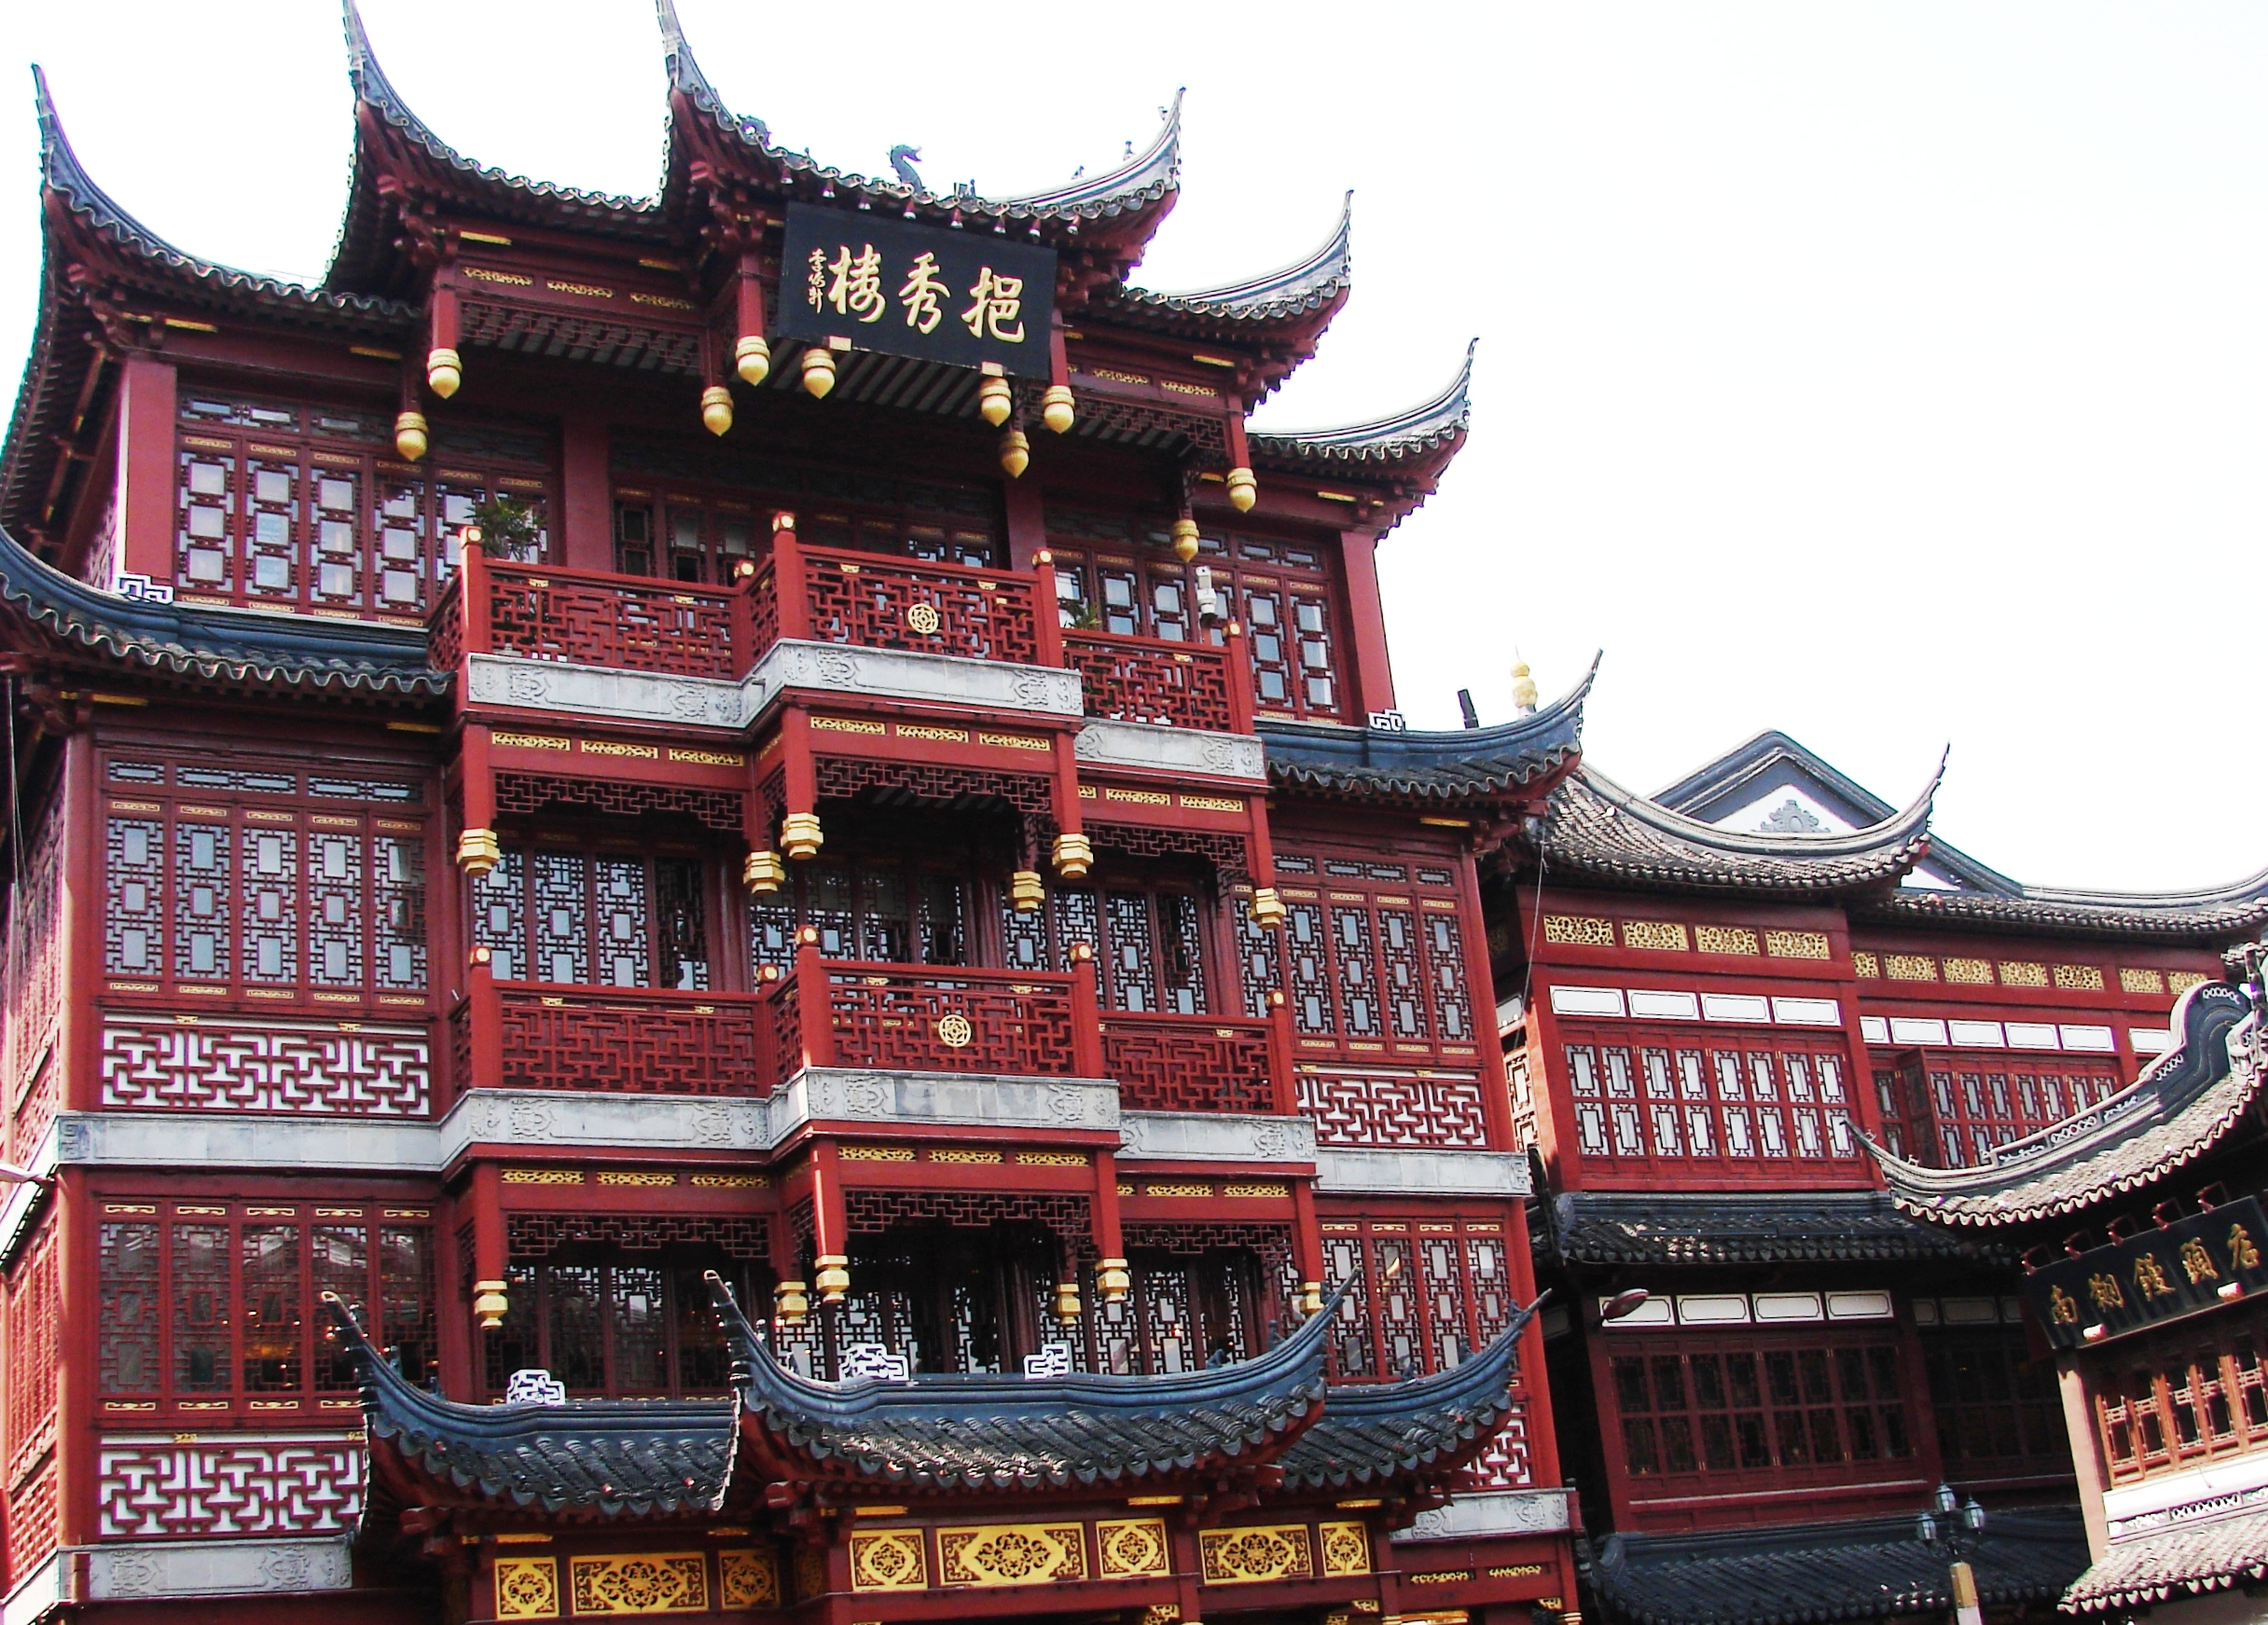 Traditional-architecture-in-shopping-area.jpg